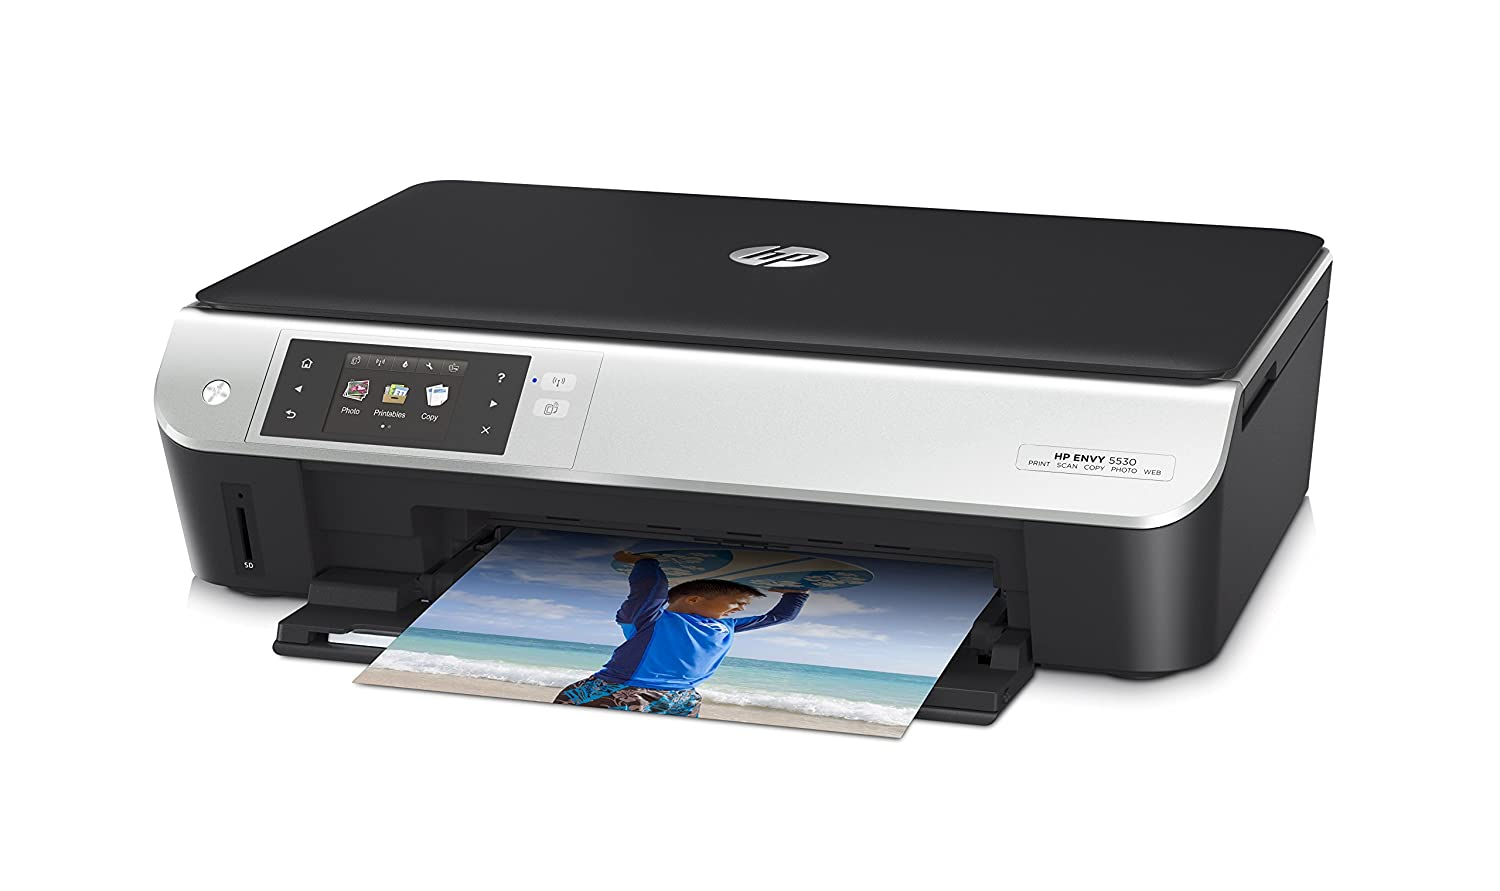 HP ENVY 5530 - Impresora multifunción de tinta color (impresión móvil, HP ePrint, HP WiFi Direct)